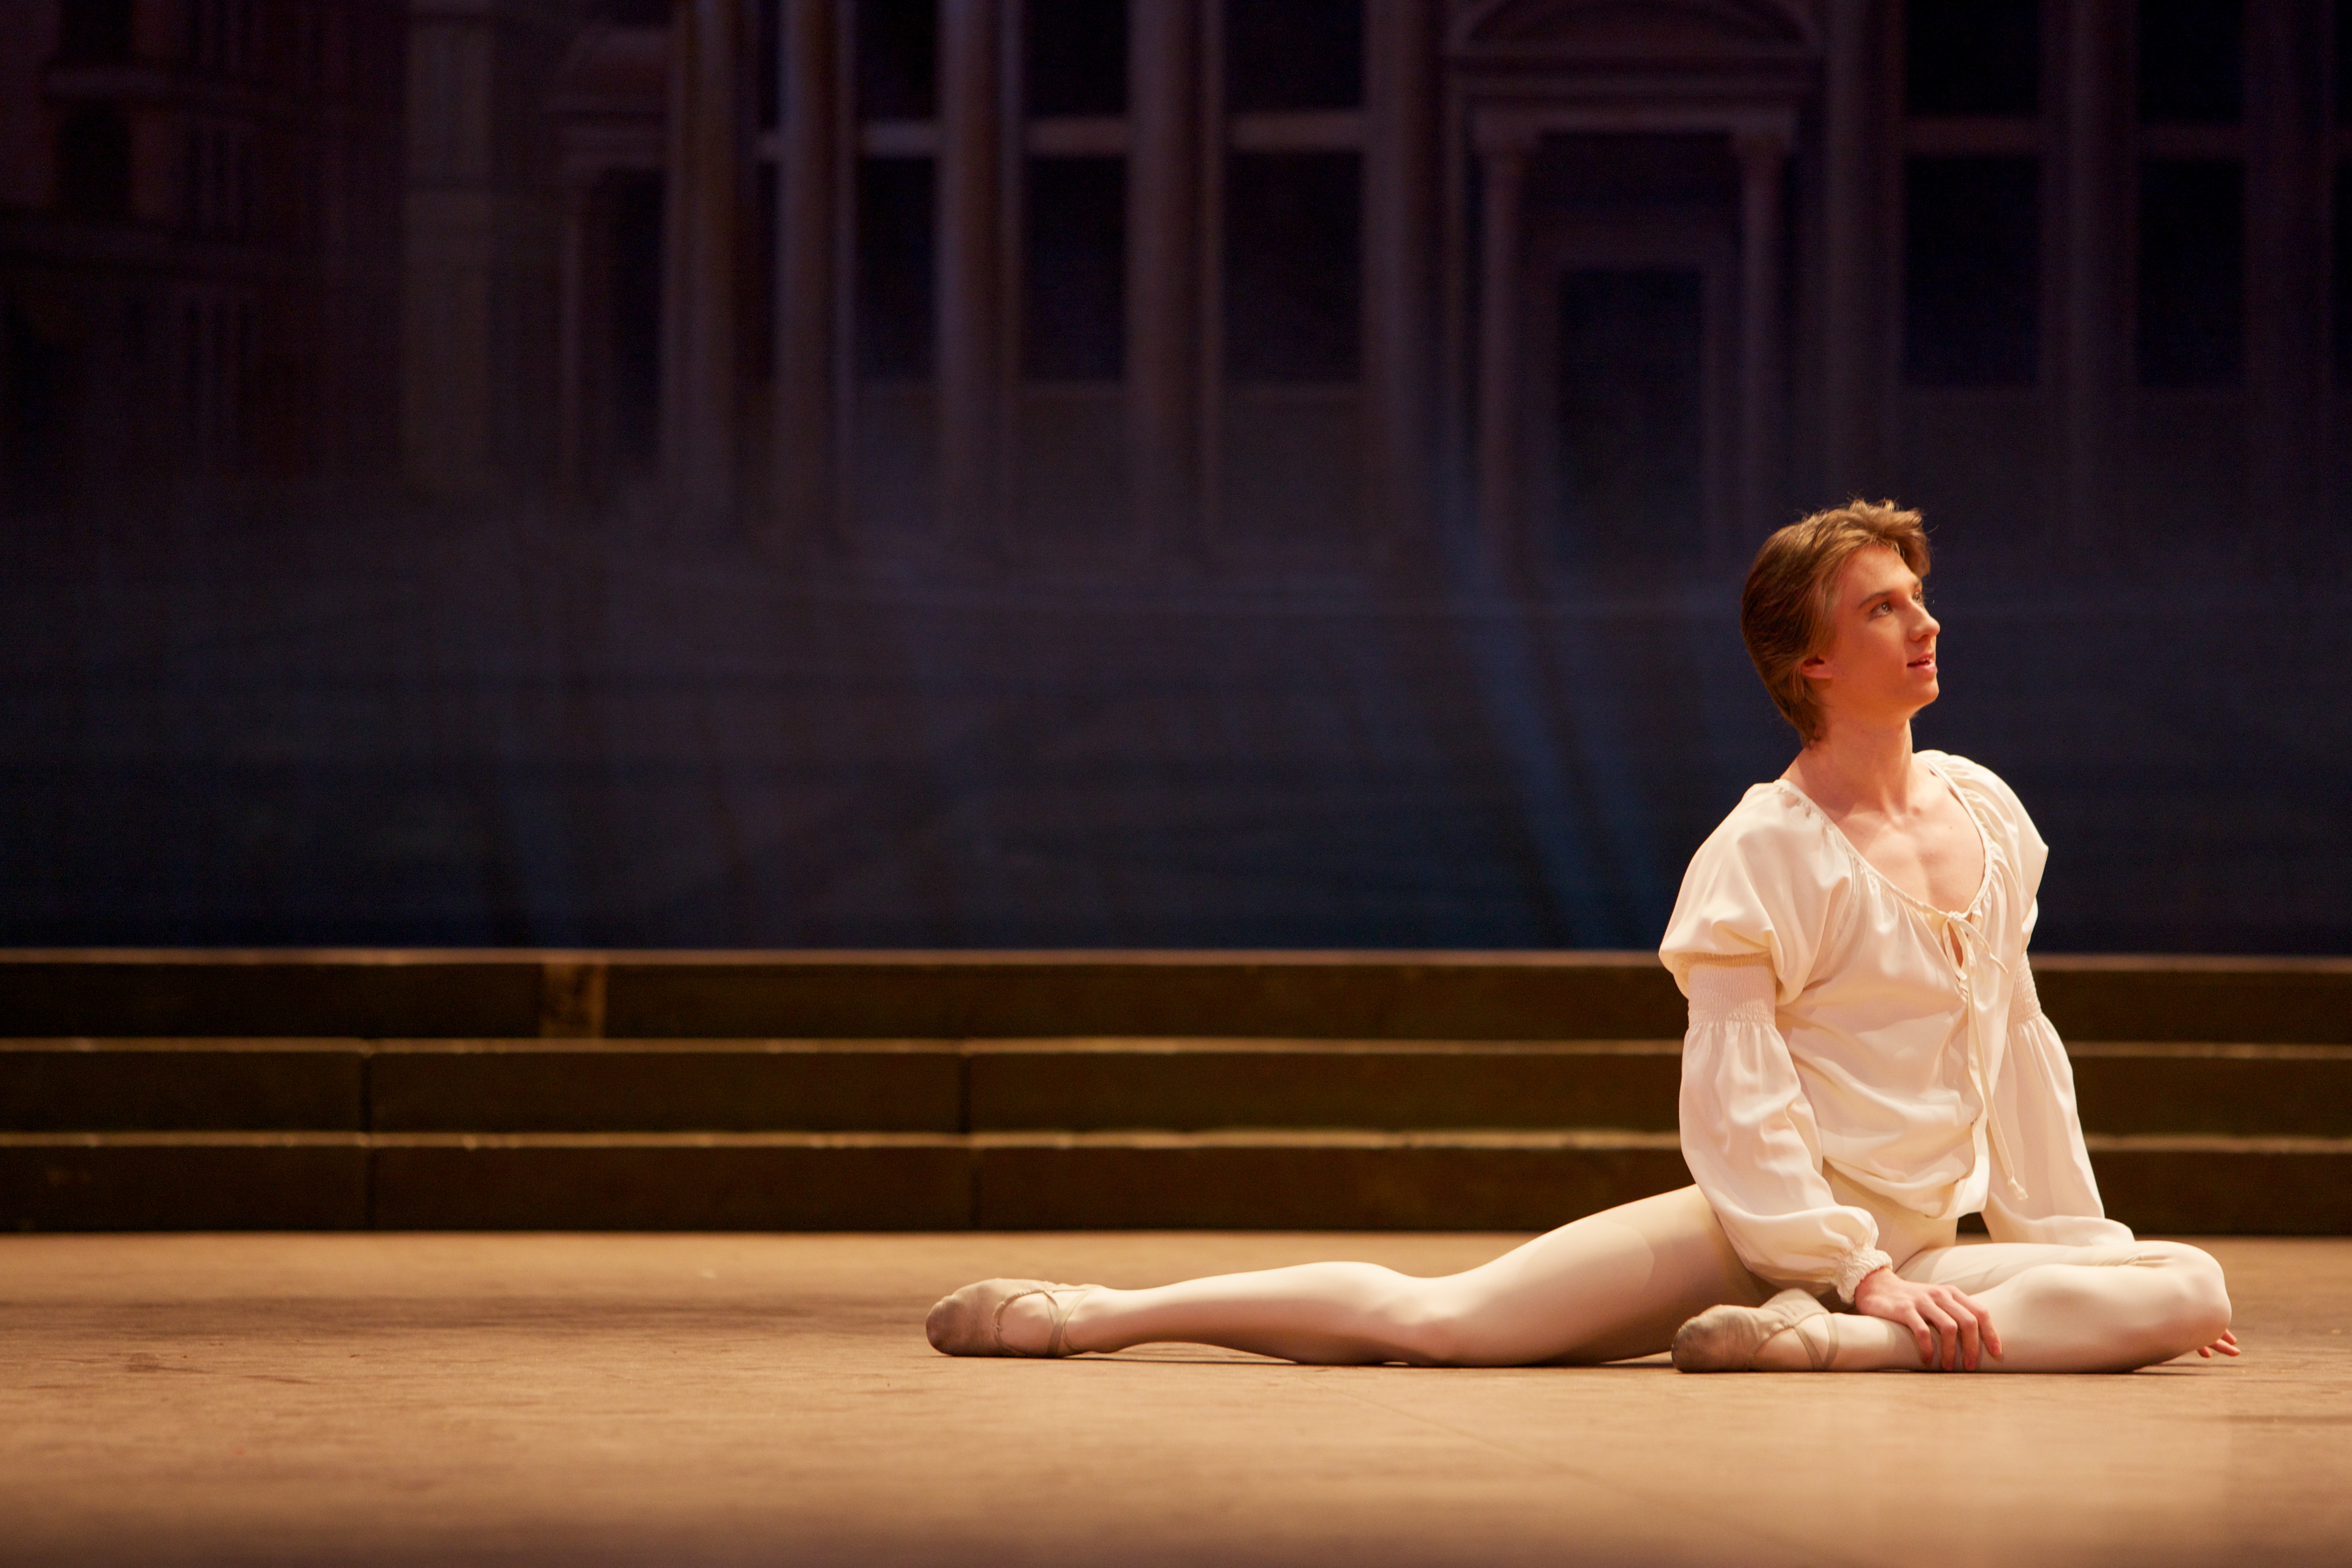 one ballet dancer sits alone on stage